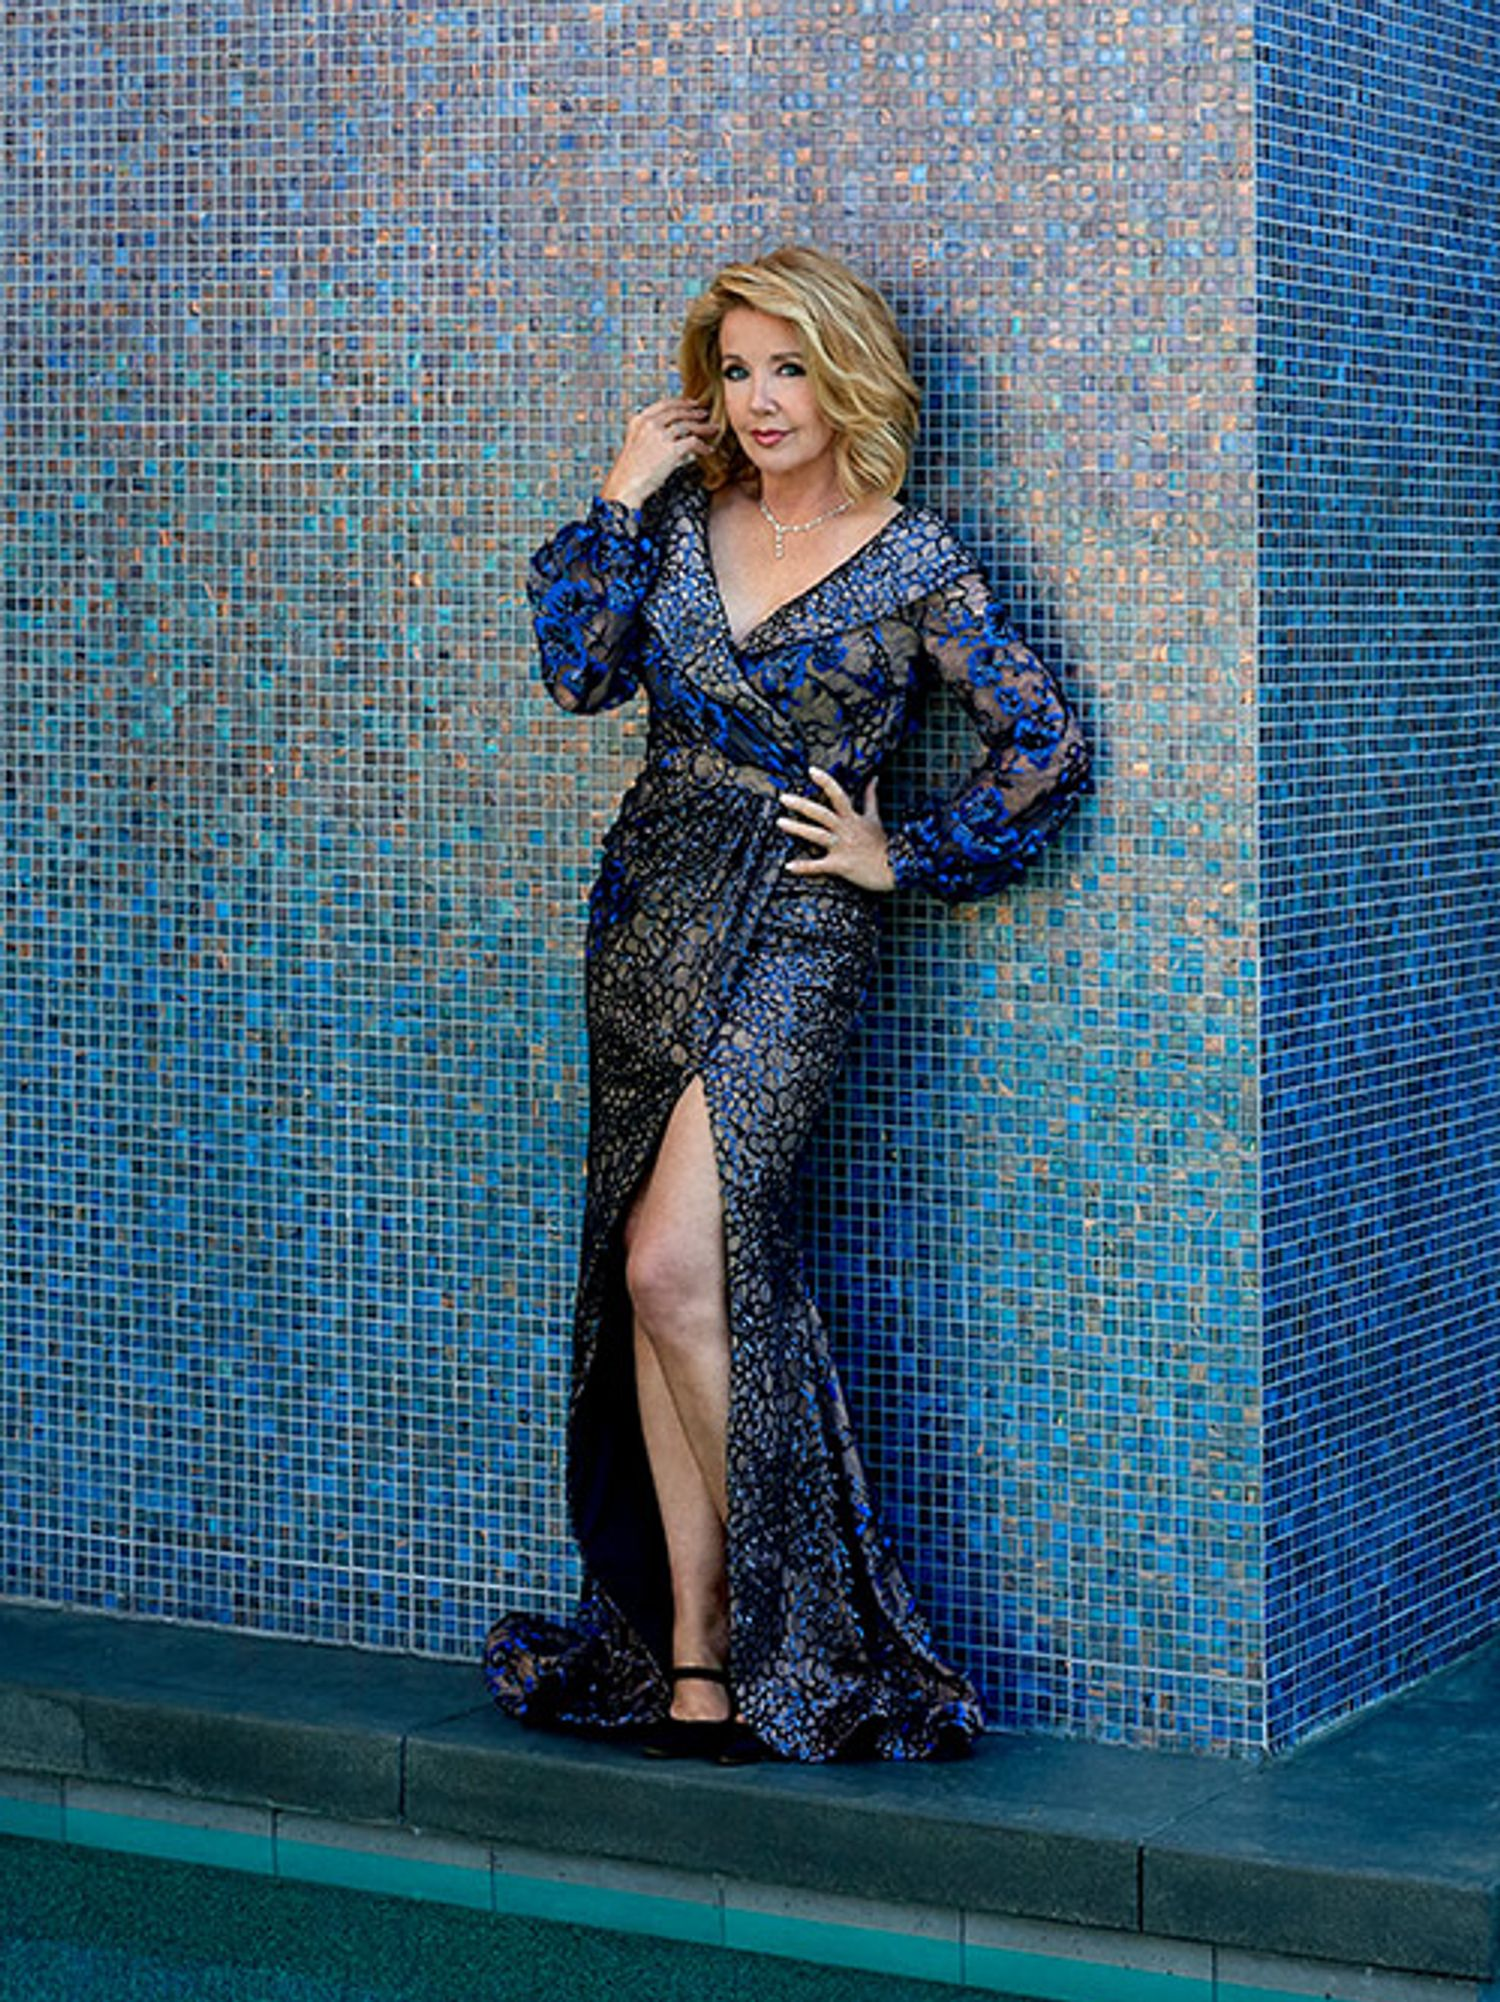 Melody Thomas Scott in a long textured blue dress against a blue mosaic tile wall.